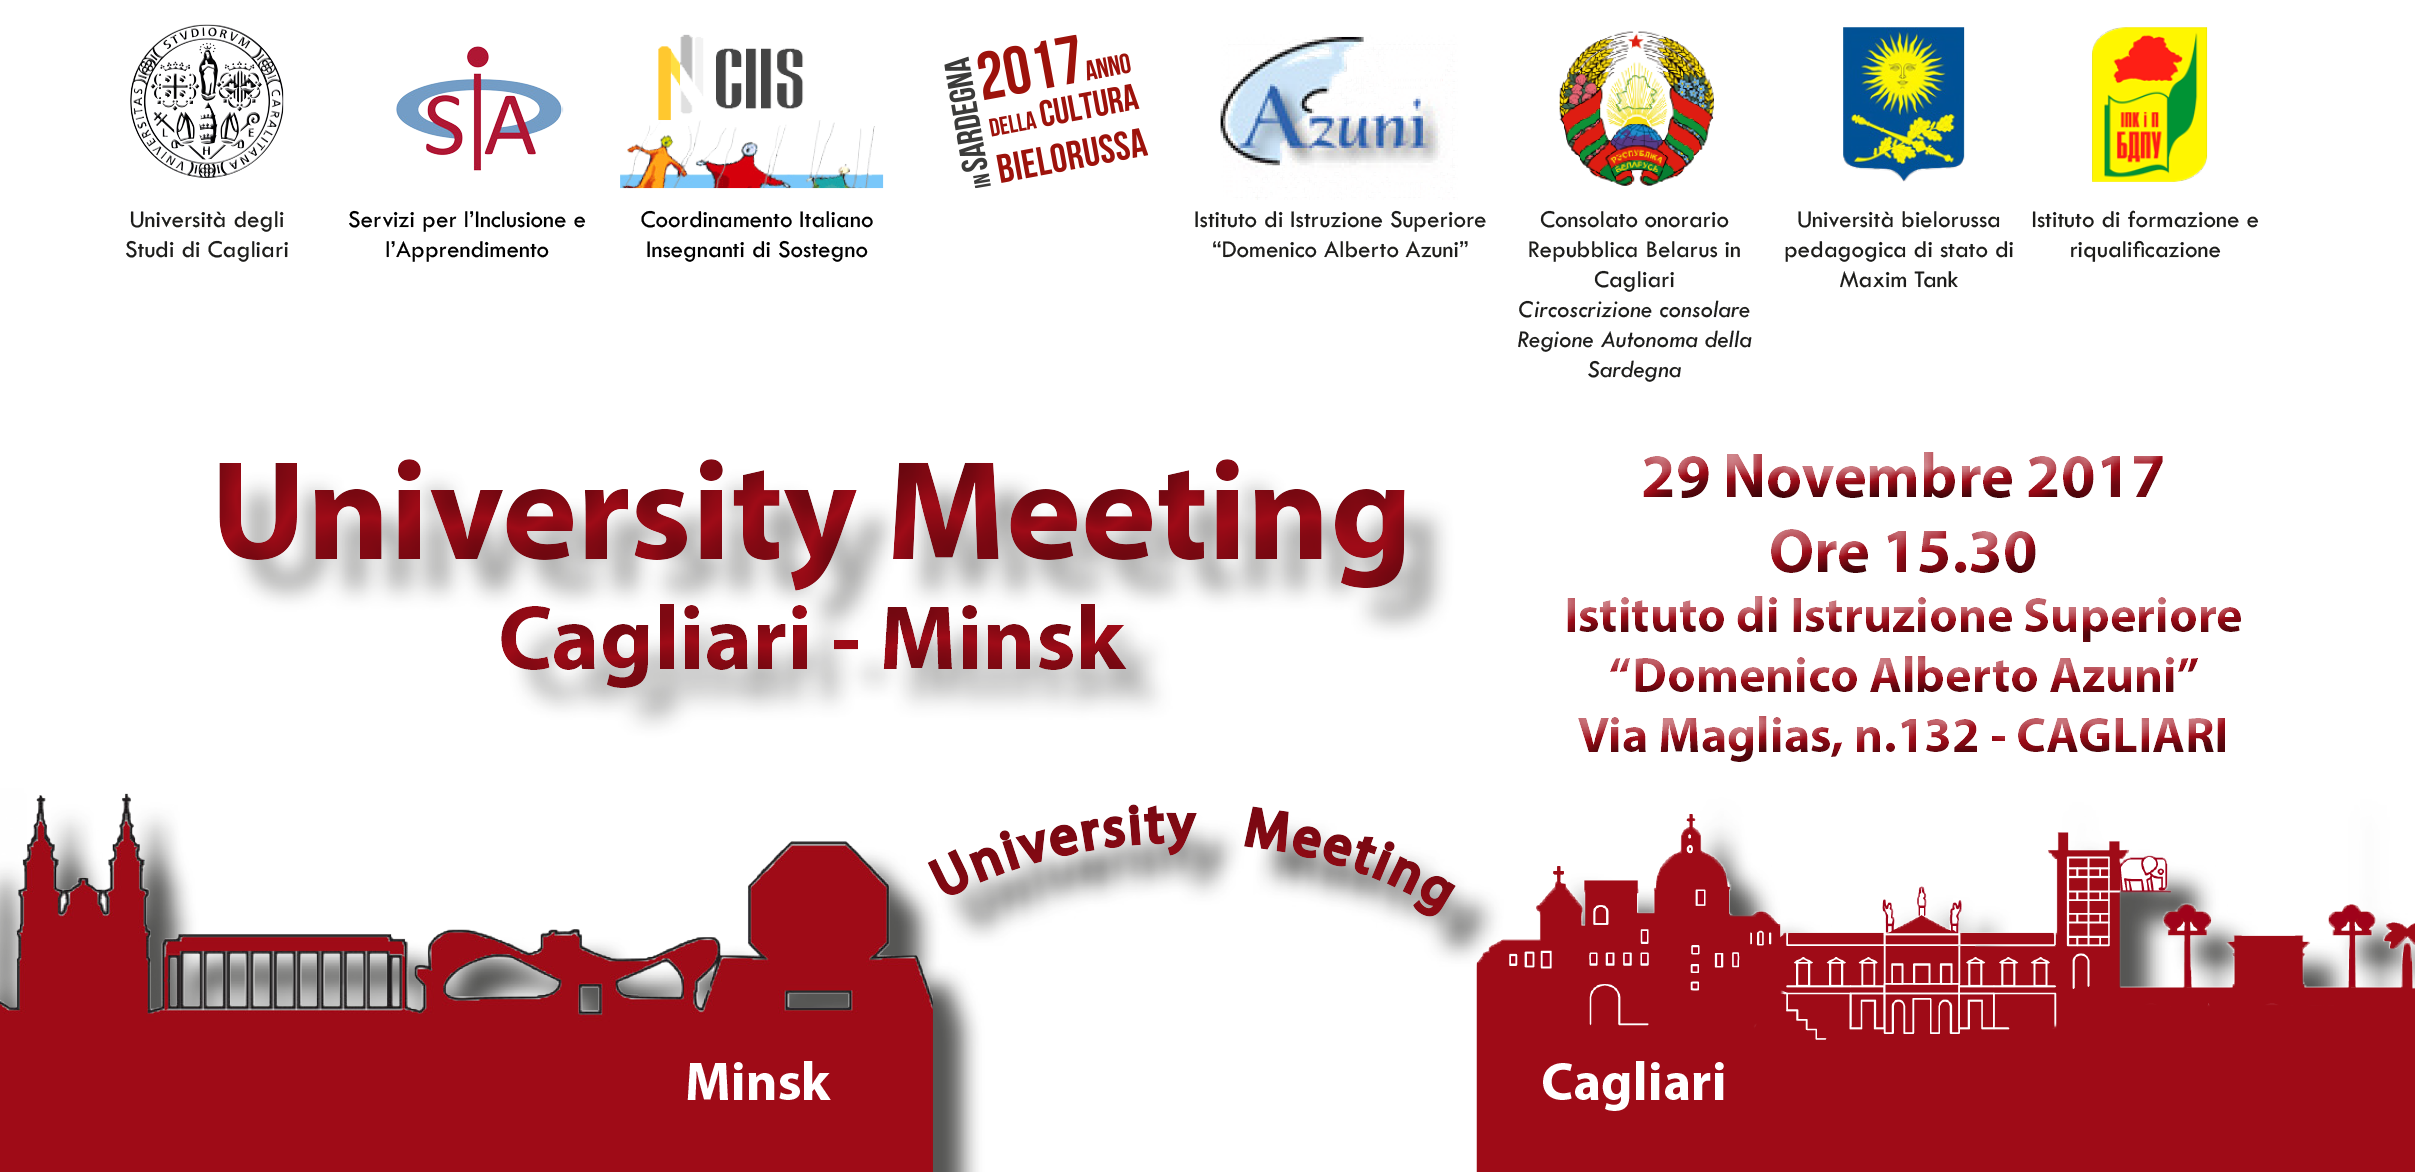 Seminario University Meeting on Inclusion, Cagliari - Minsk - 29 Novembre 2017